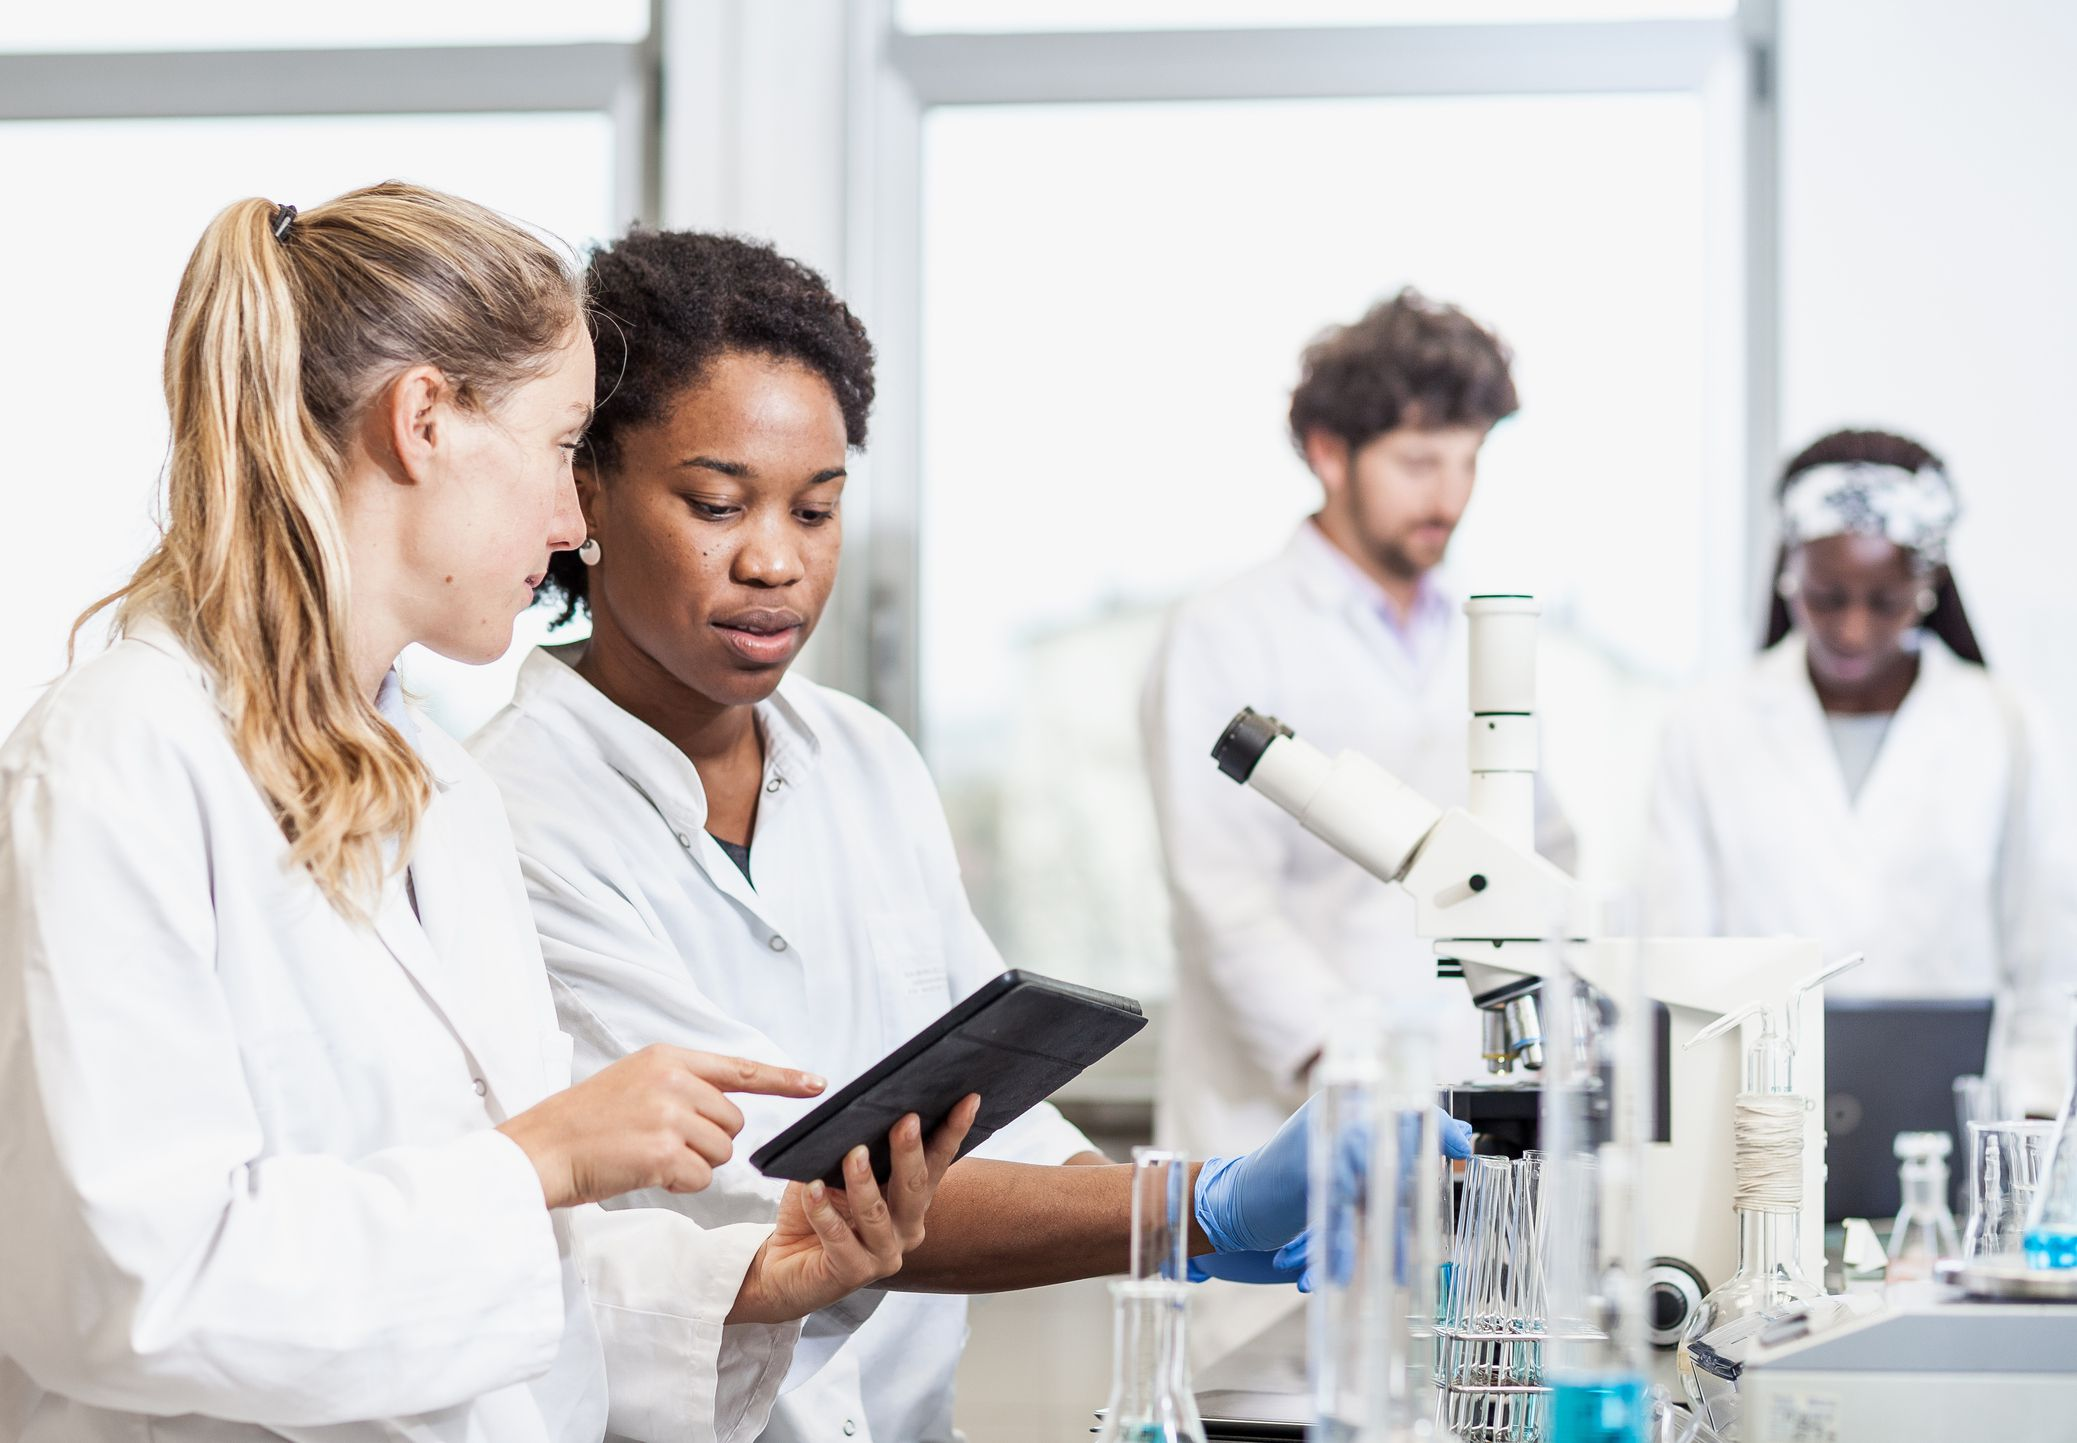 major in chemistry and biology What does it mean to study biology for many students, the thought of pursuing a college major in biology brings back bad memories of dissecting frogs in high school.